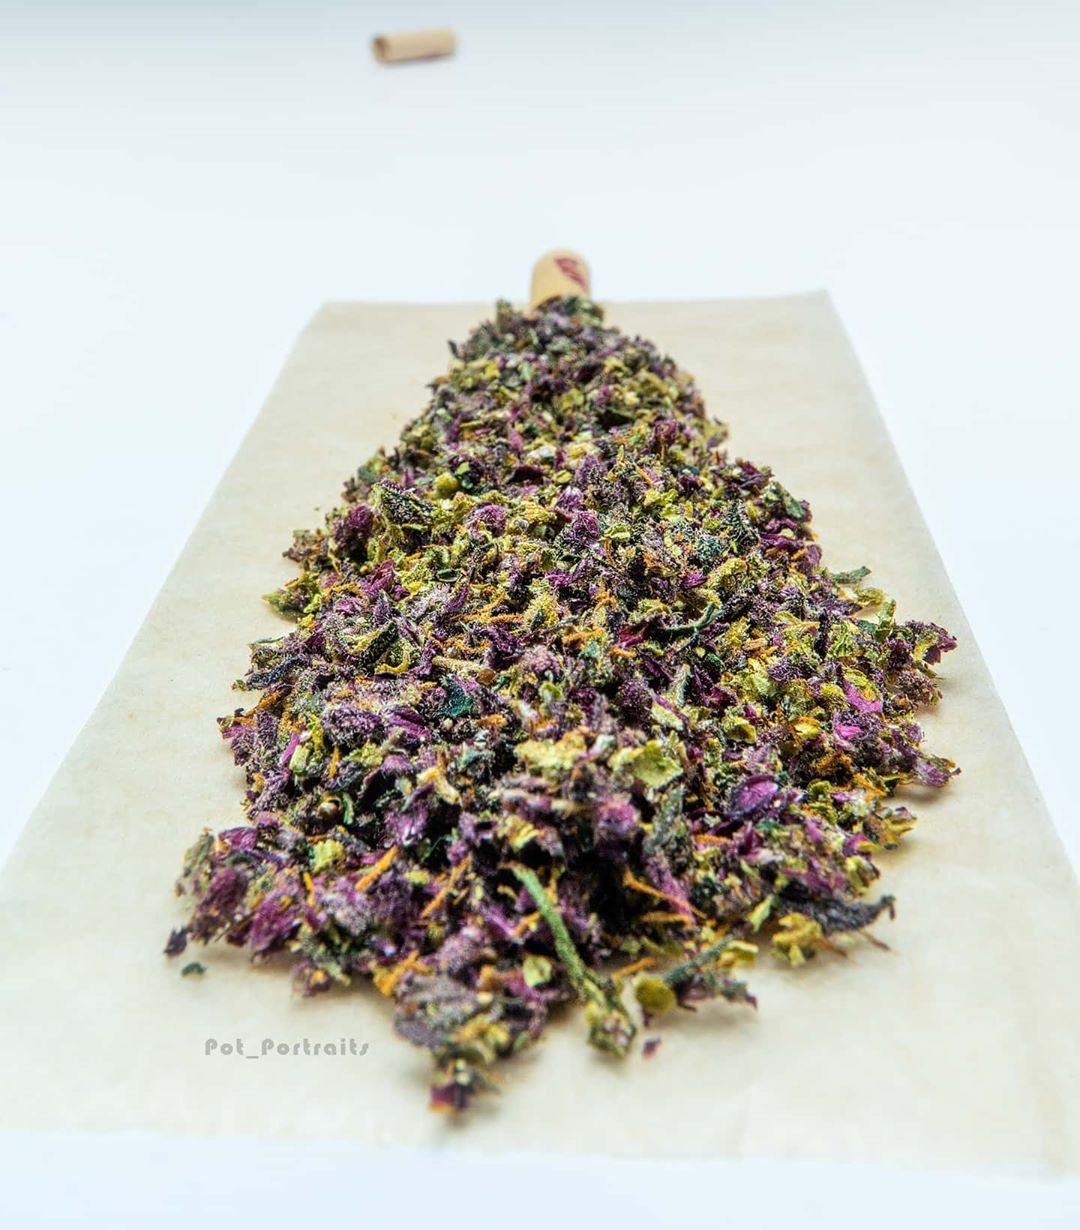 Purple Kush Buddha Seeds